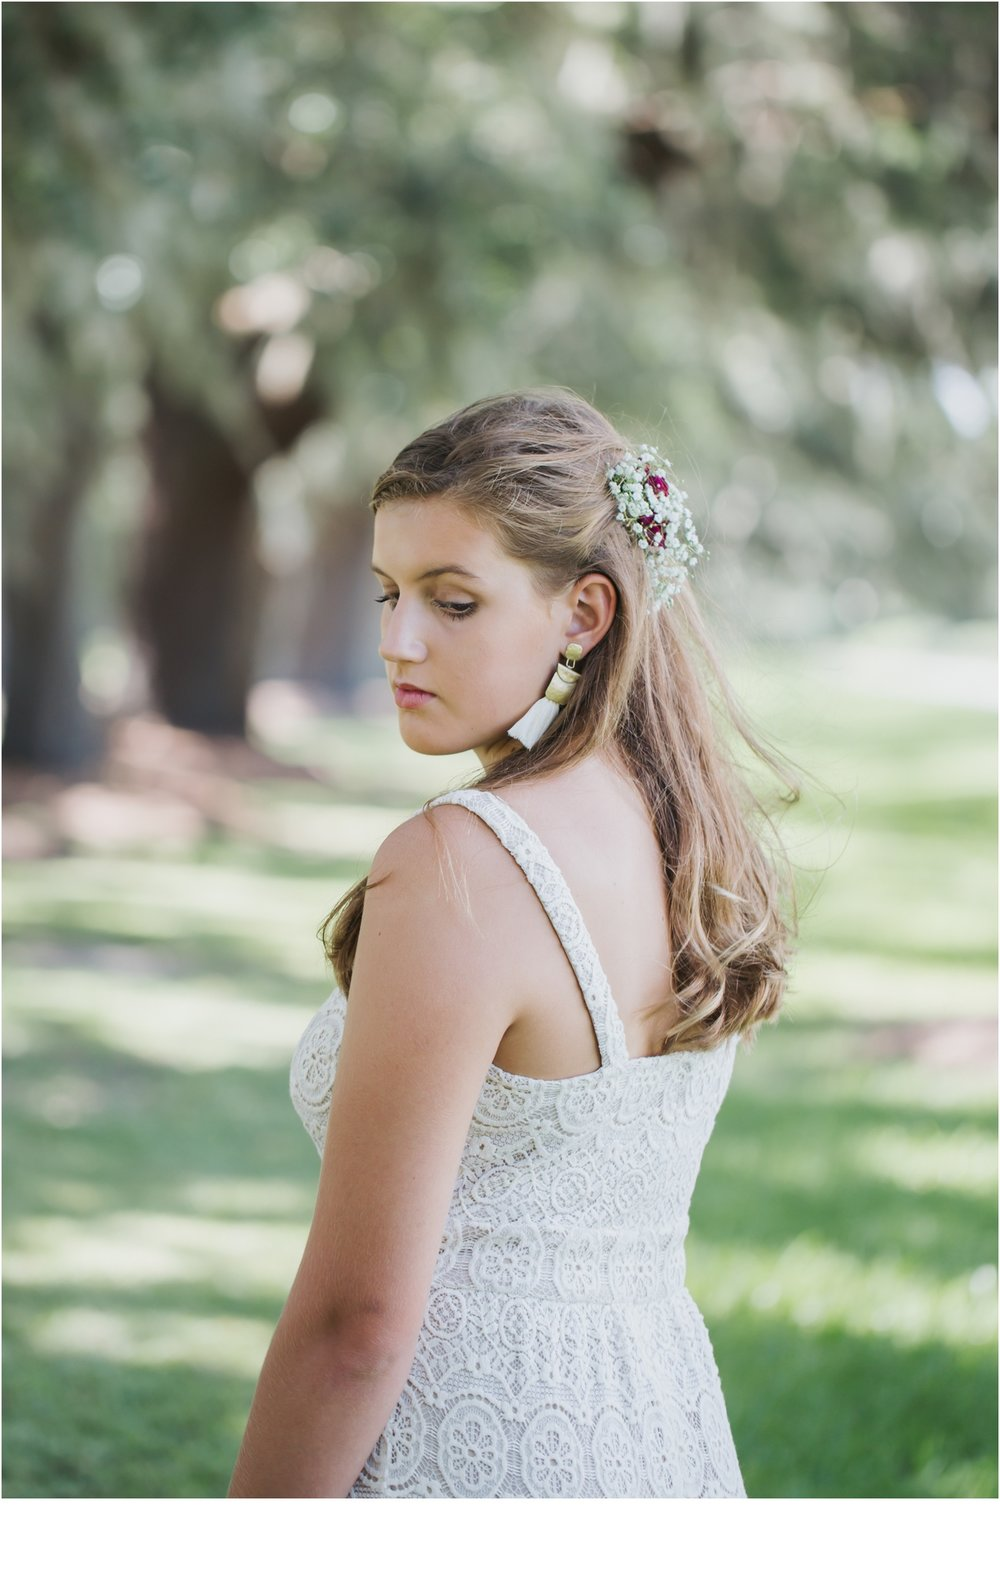 Rainey_Gregg_Photography_St._Simons_Island_Georgia_California_Wedding_Portrait_Photography_1109.jpg